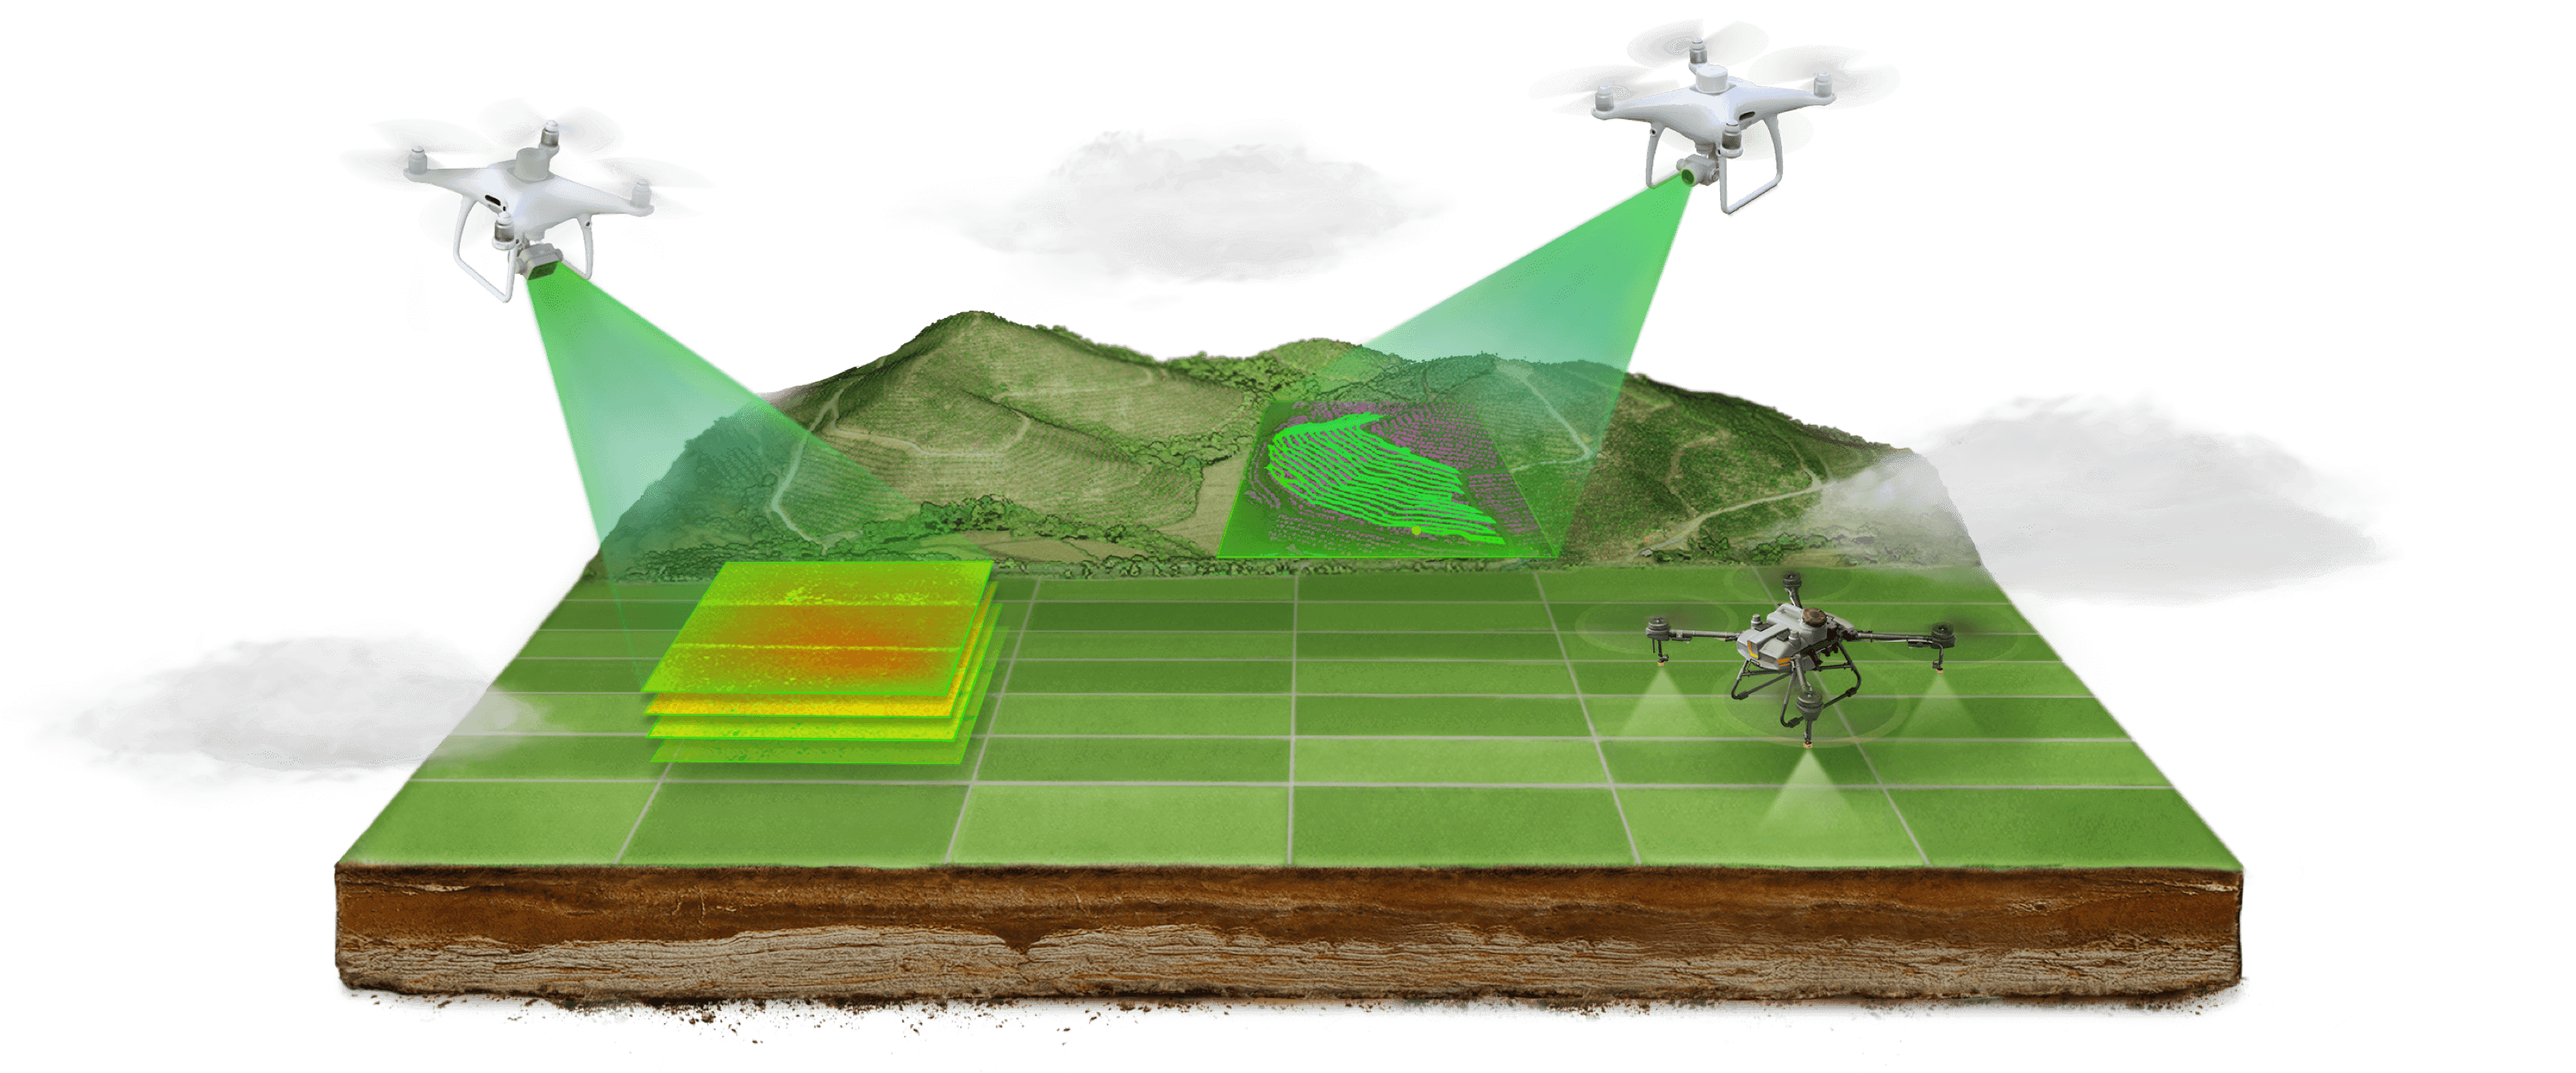 AGRAS T10   Cloud-Based 3D Farming: Digital Agriculture is Here